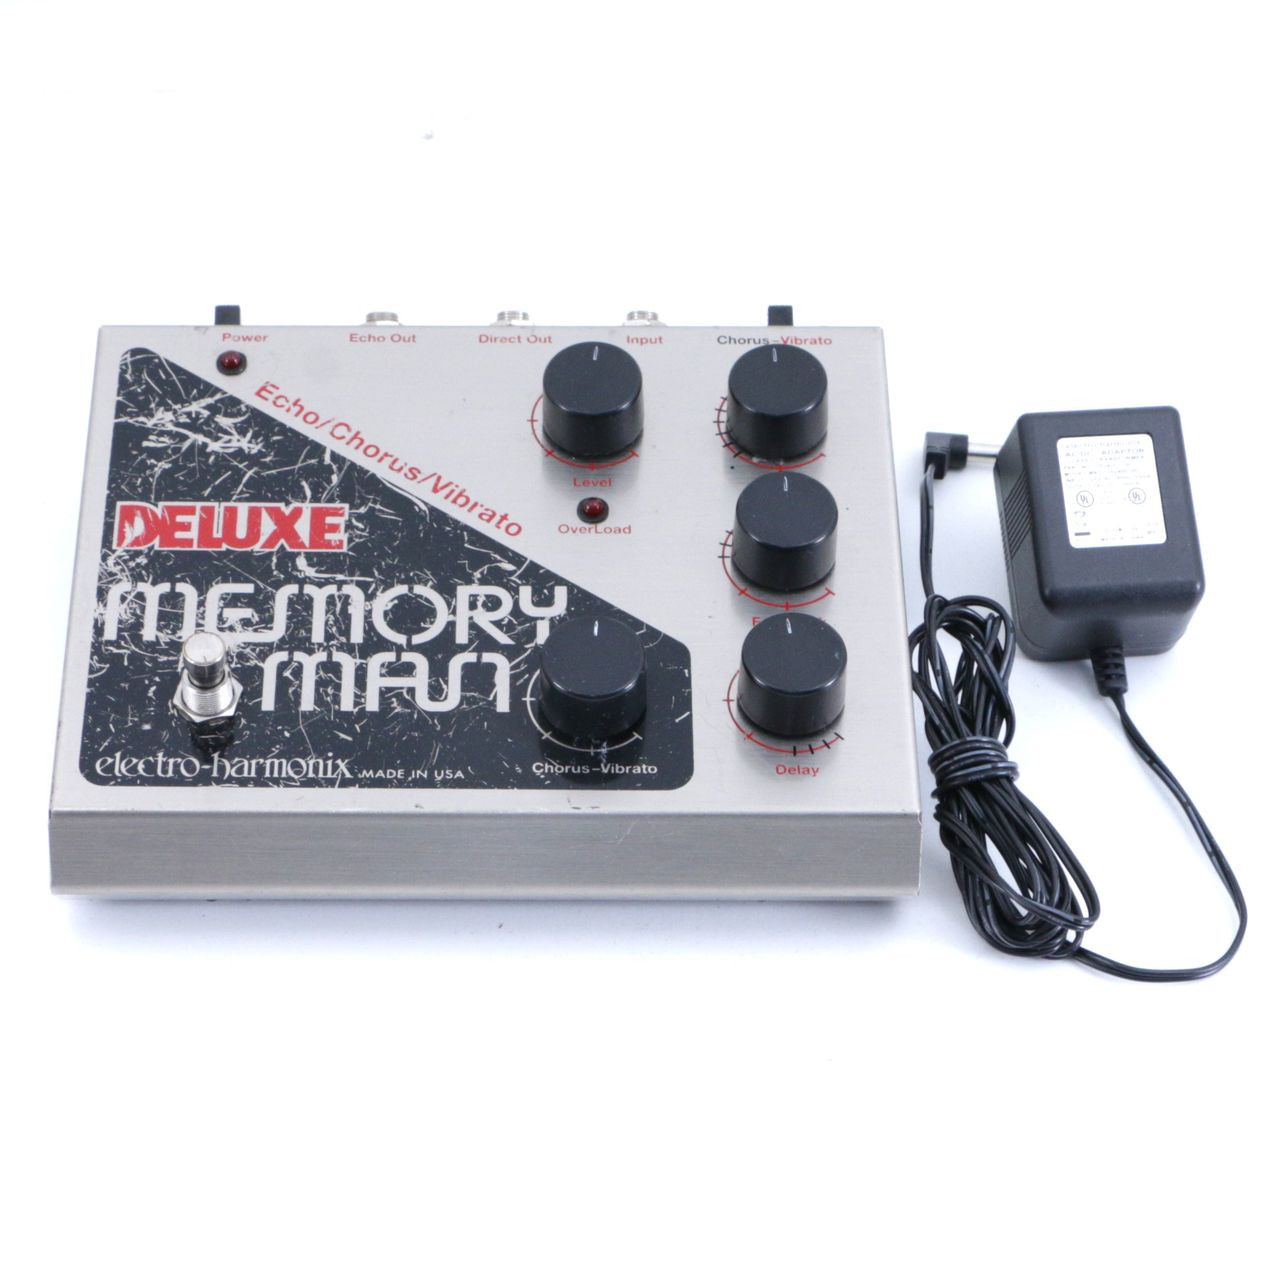 electro harmonix deluxe memory man delay guitar effects pedal p 06778. Black Bedroom Furniture Sets. Home Design Ideas